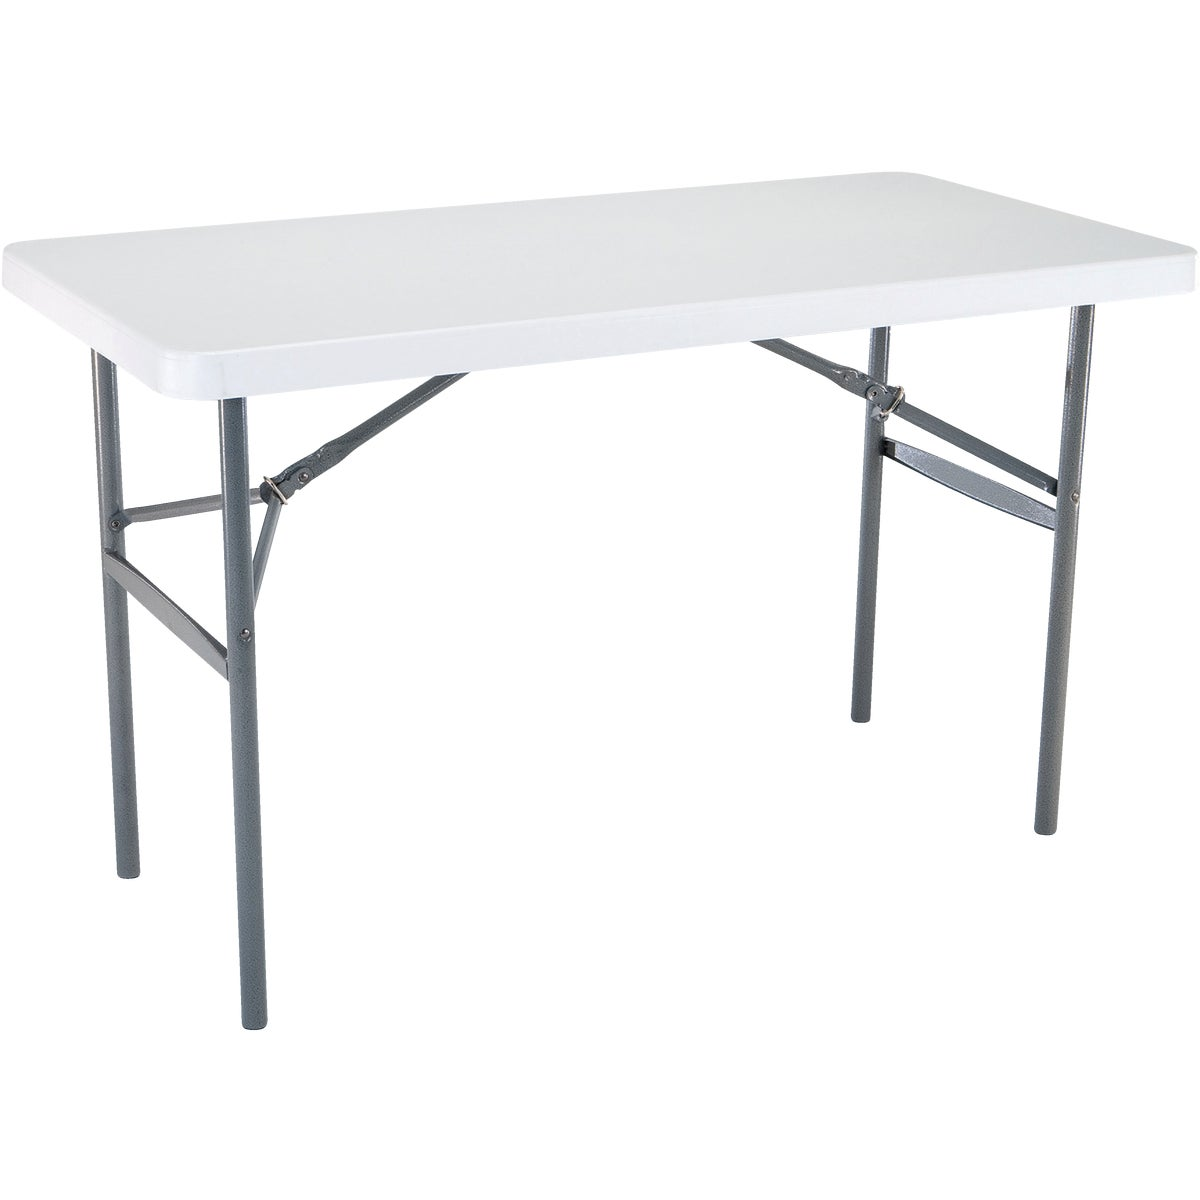 4' FOLDING TABLE - 2940 by Lifetime  Xiamen